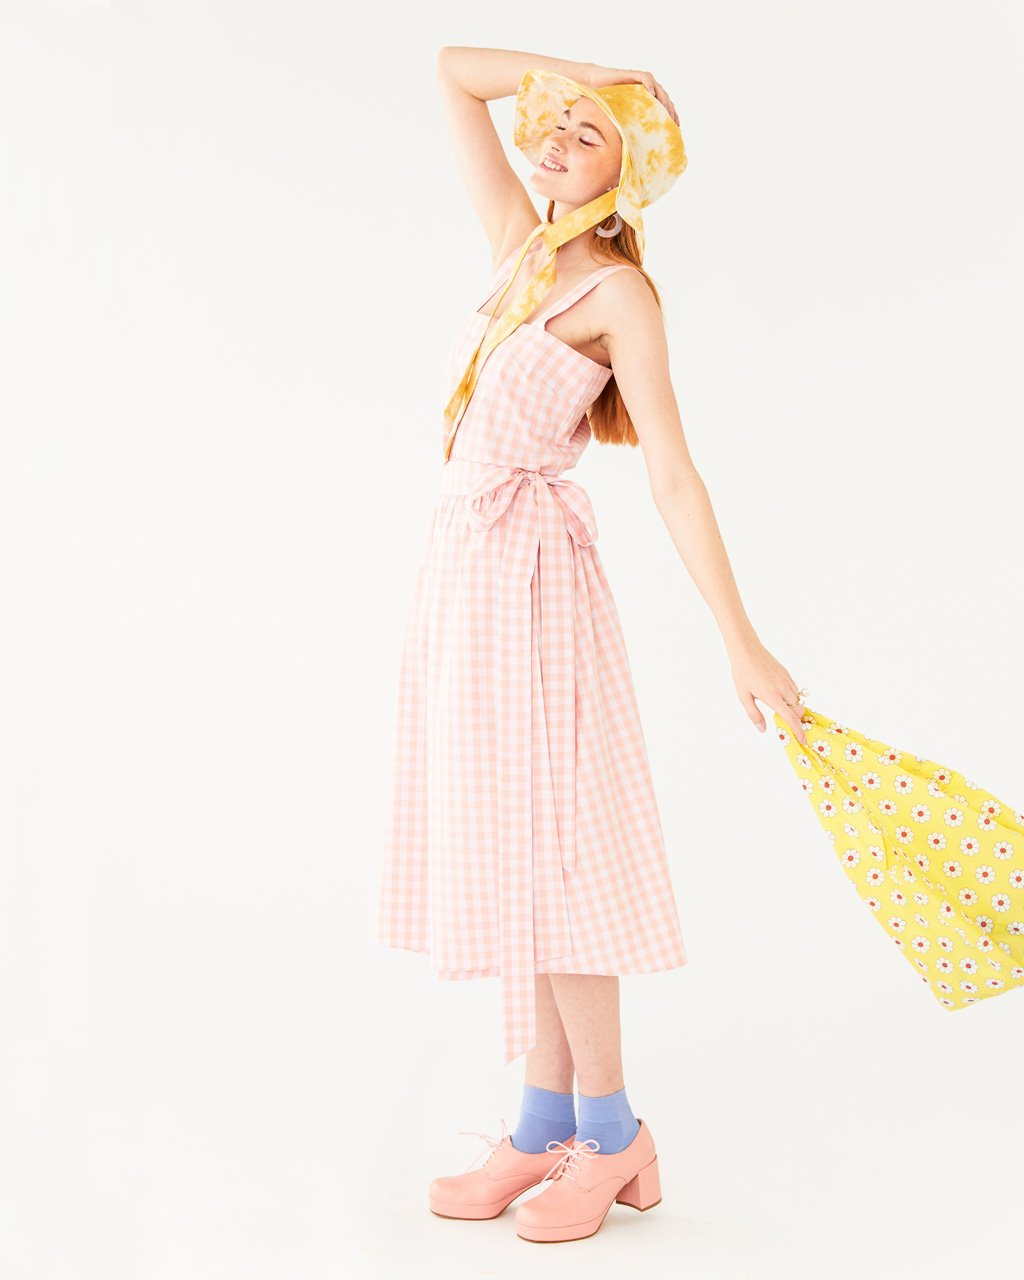 model wearing pink and white picnic plaid skirt with matching tank, pink heeled shoes, yellow tie dye hat, and carrying a yellow daisy baggu